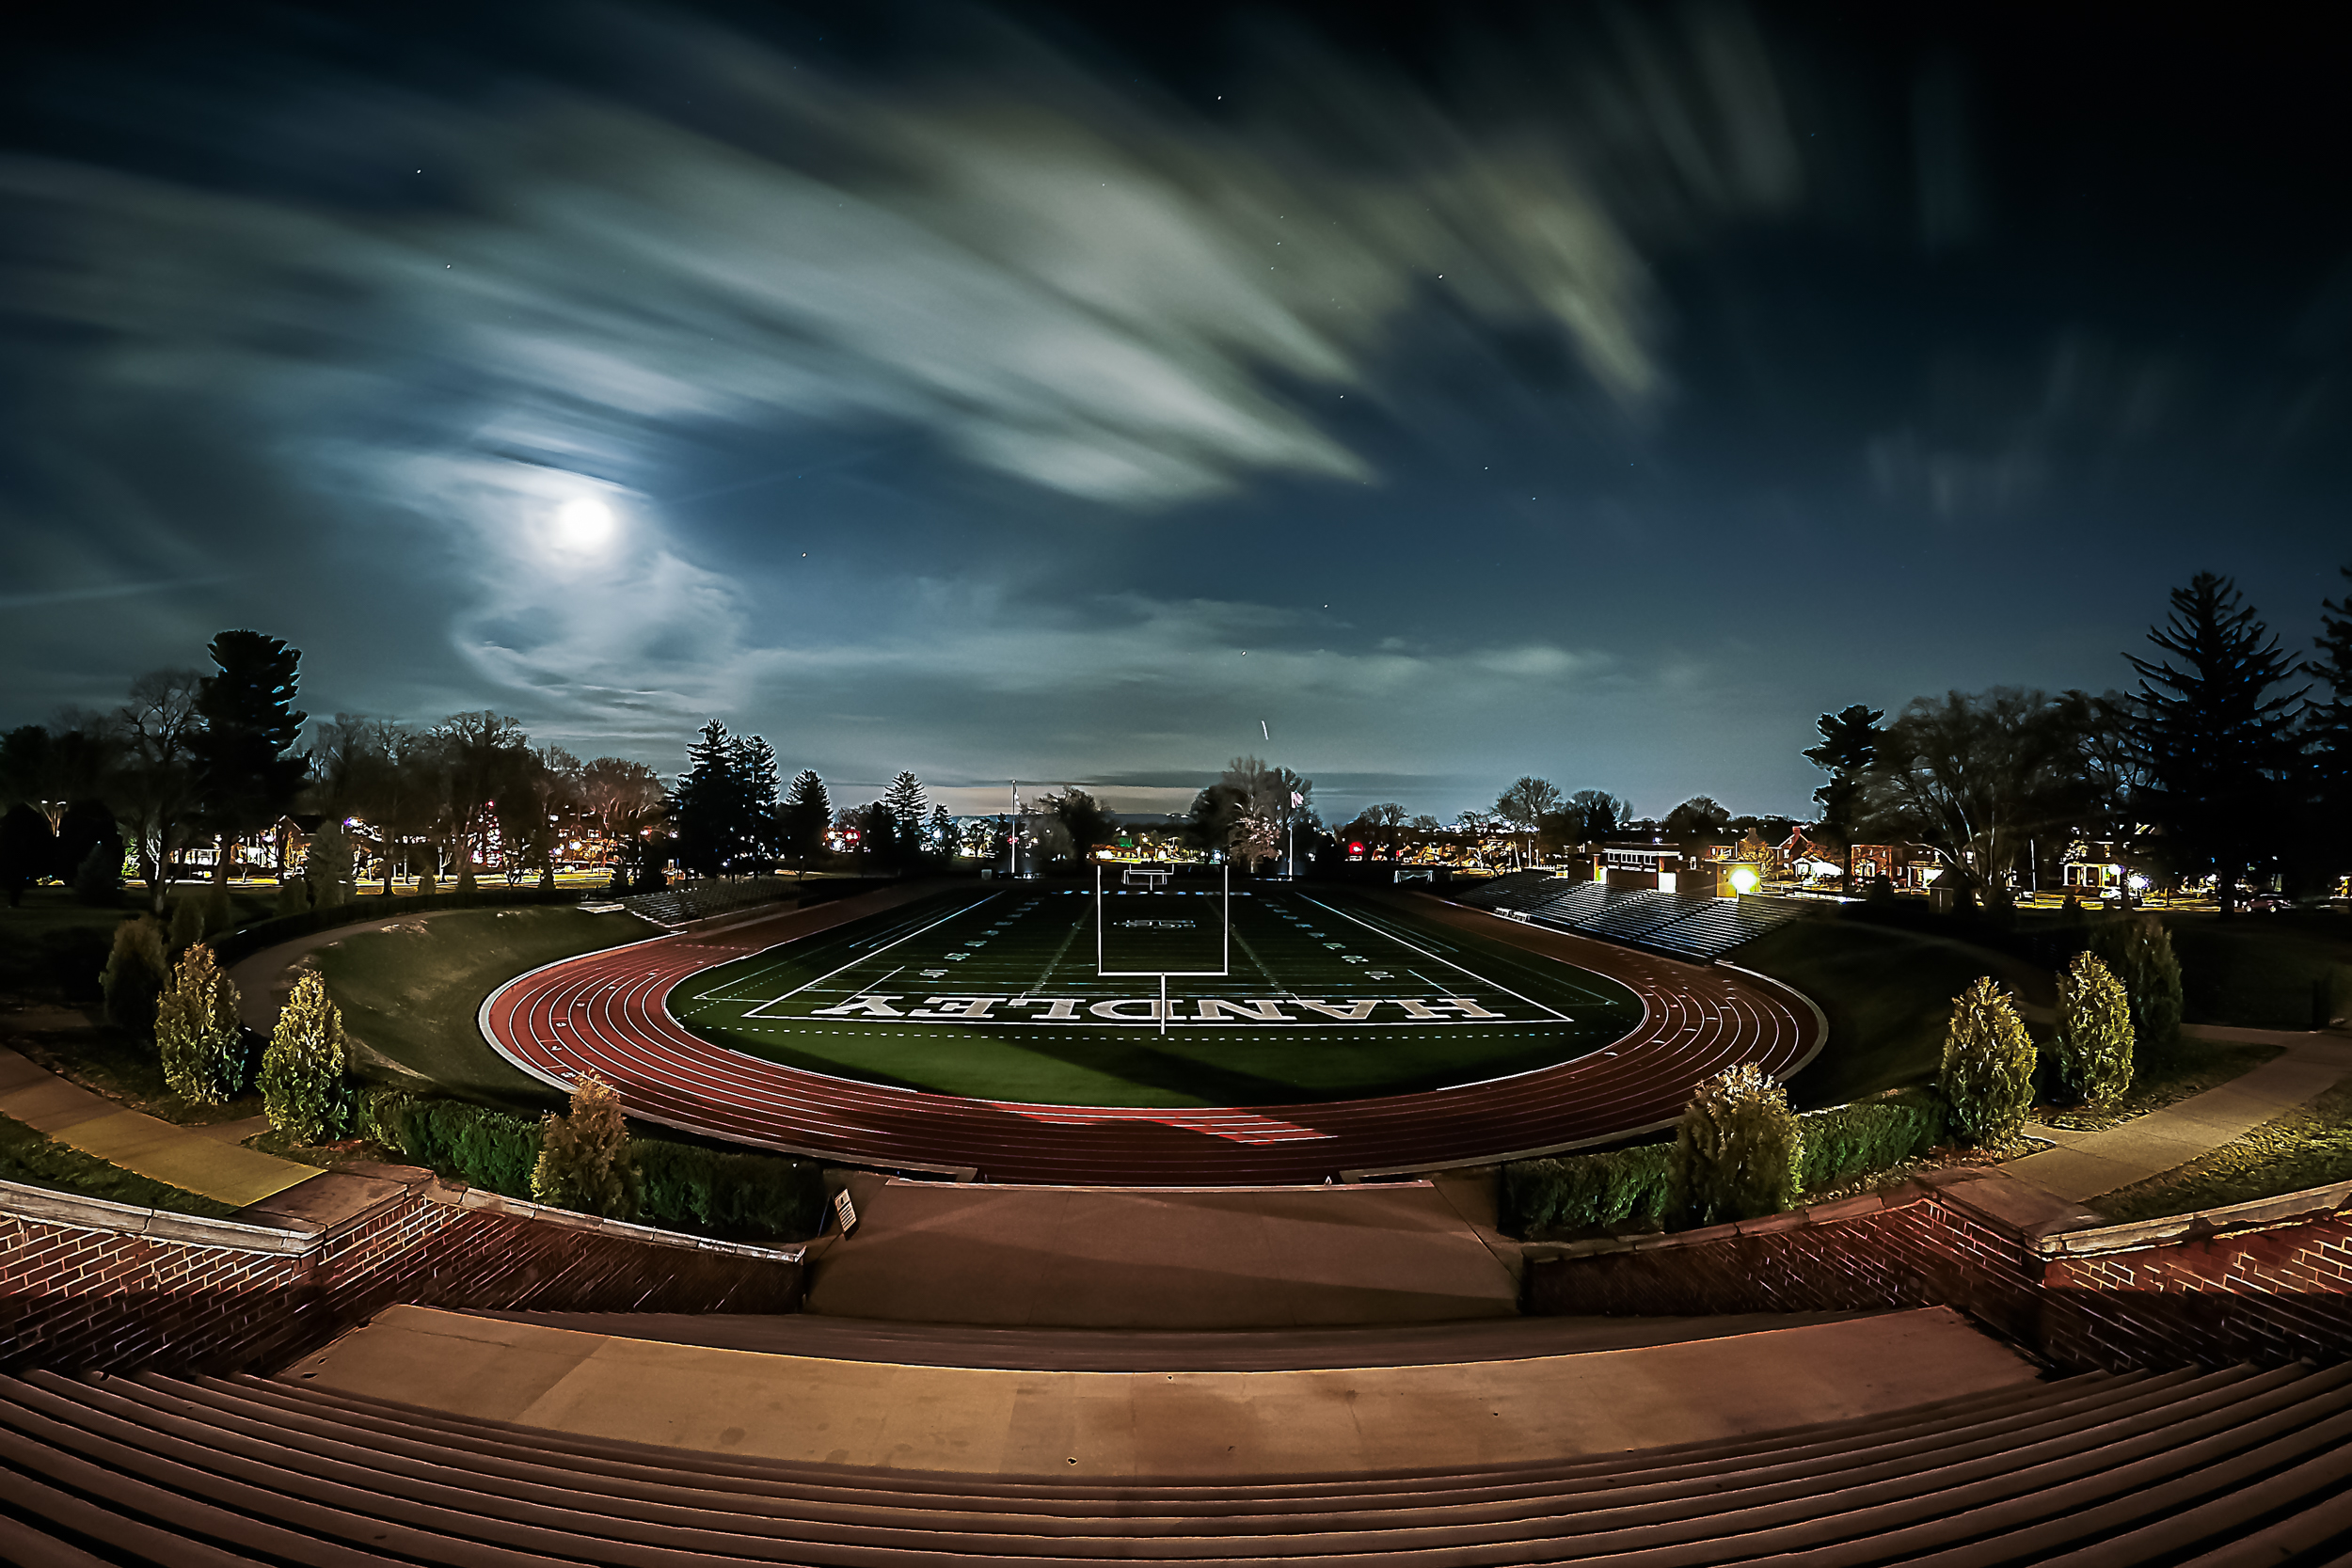 Oh what a night - to shoot the Handley Bowl. | Order a print of this image.